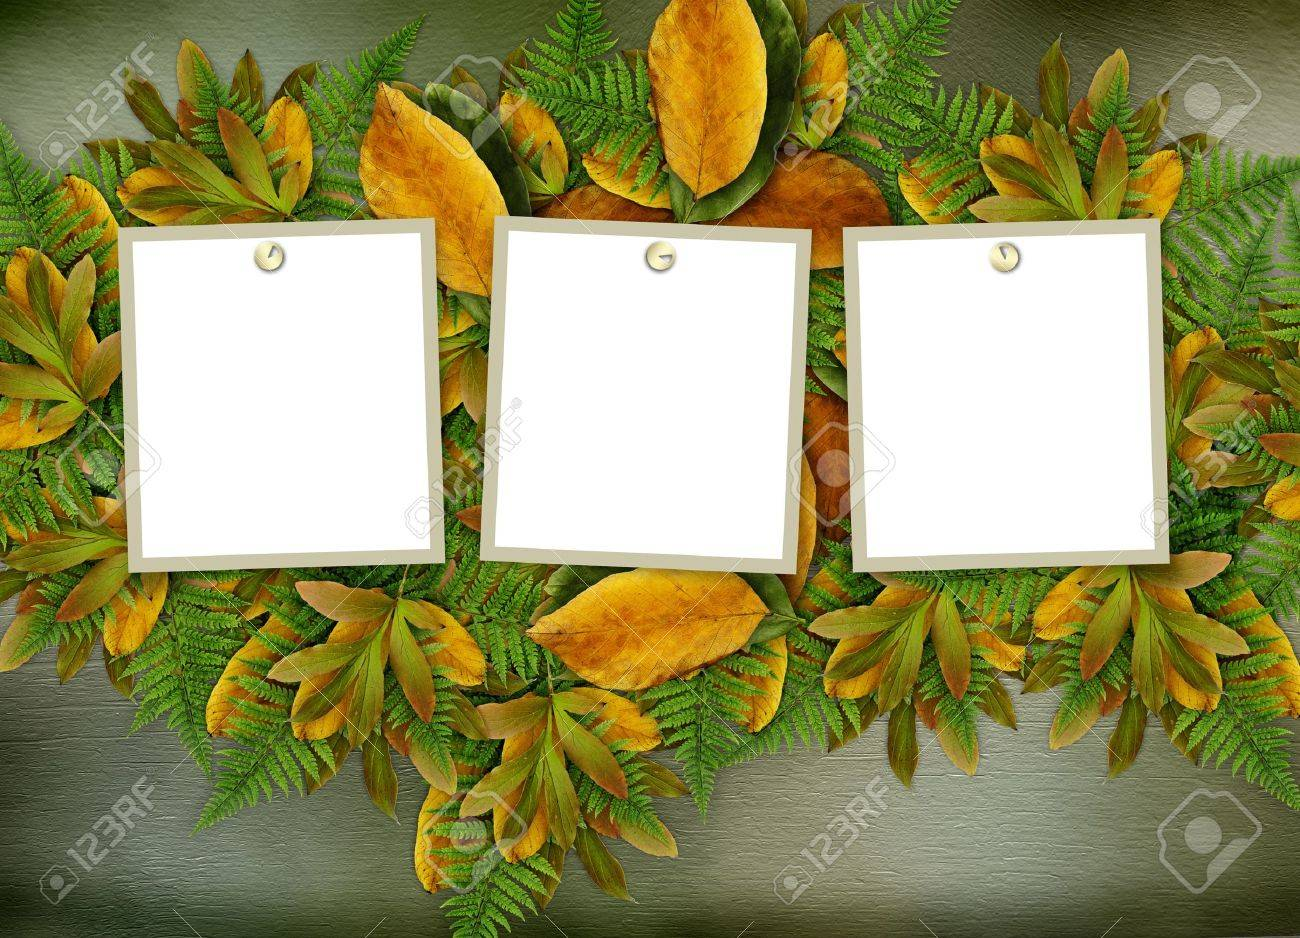 Grunge frame on the old paper for congratulation Stock Photo - 9485141